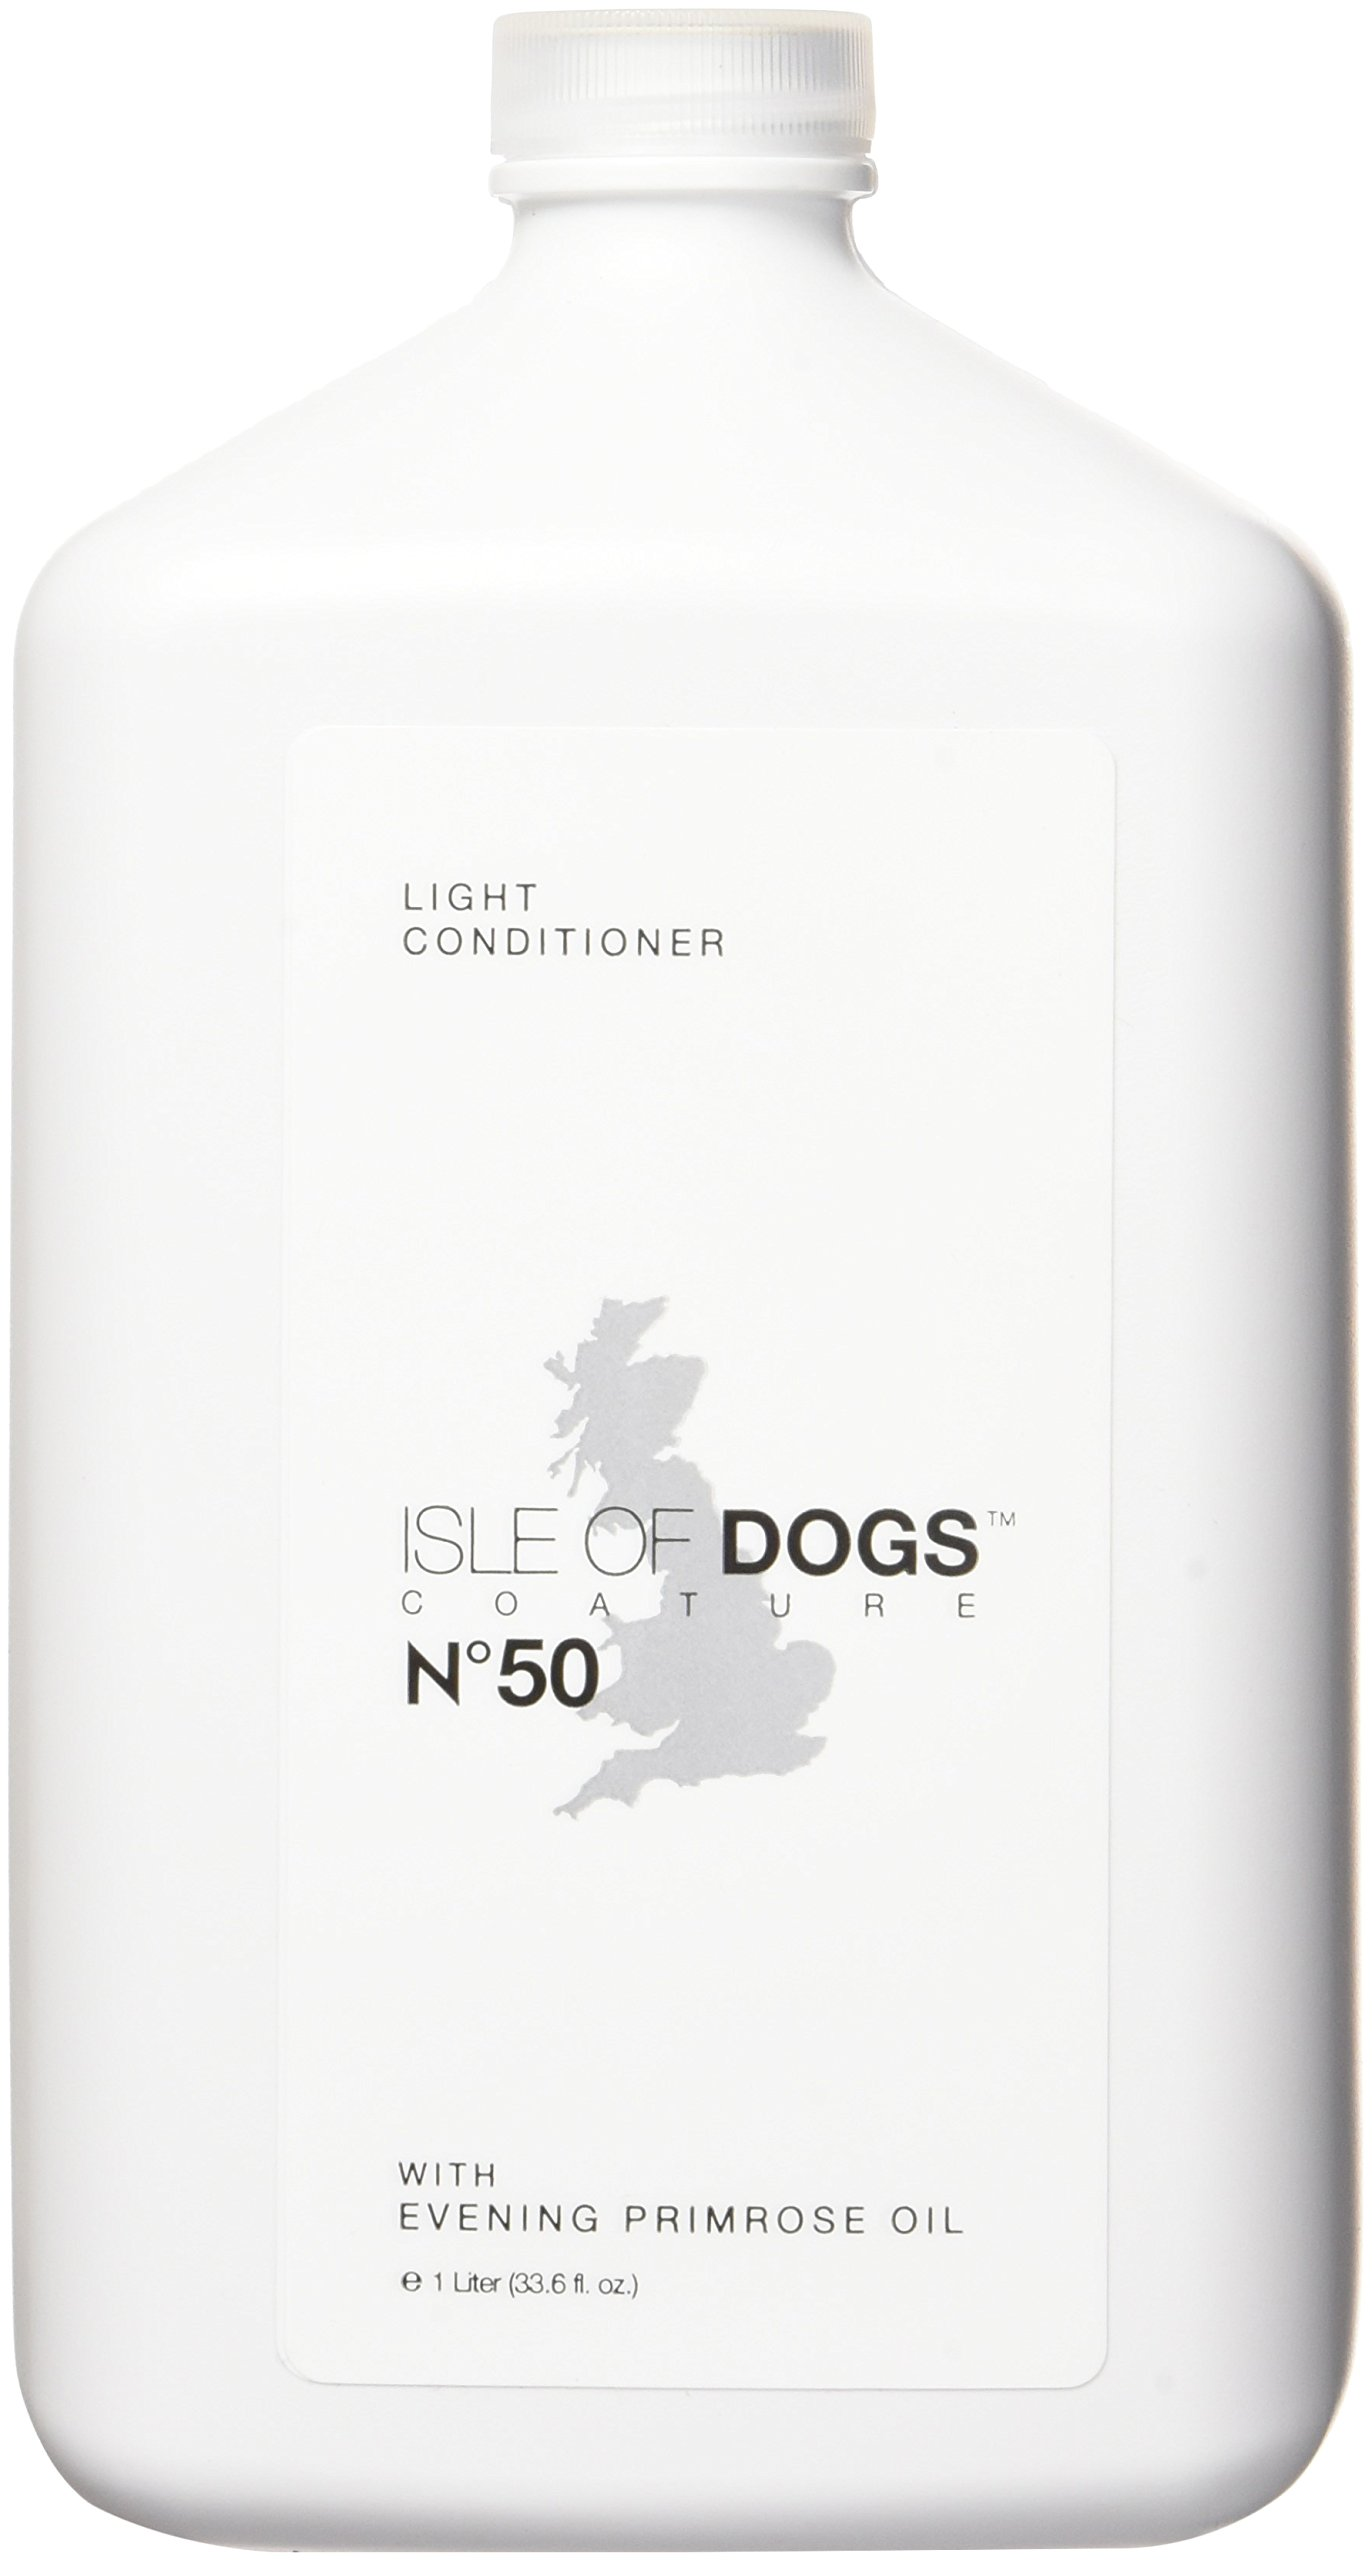 Isle of Dogs Coature No. 50 Light Management Dog Conditioner for Dry Hair, 1 liter by Isle of Dogs